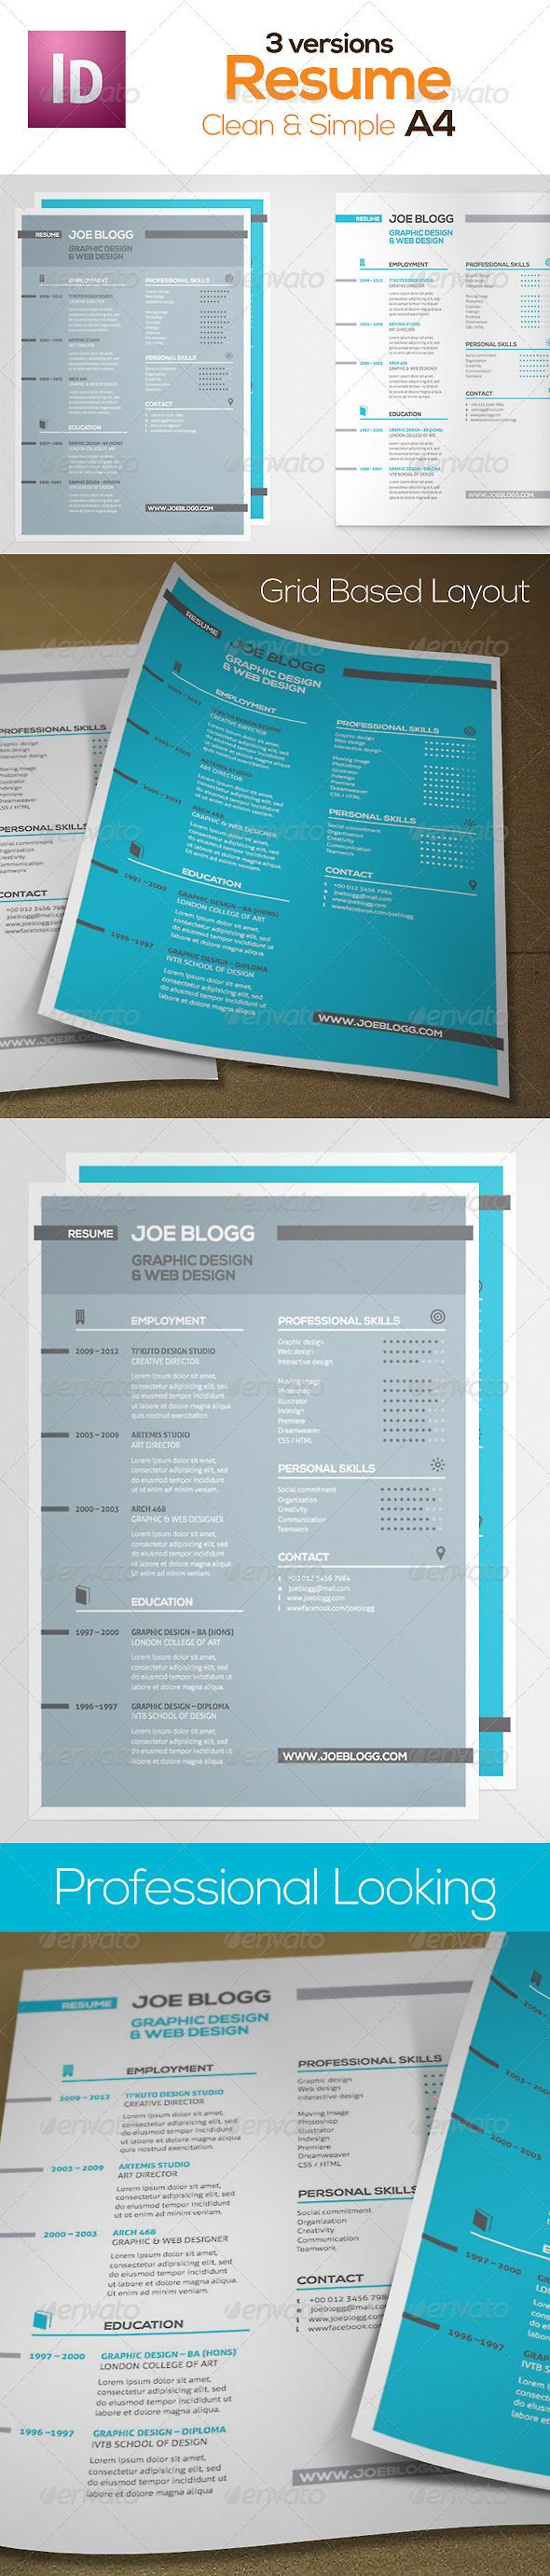 Pro Looking Resume Swiss Grid  Template Indesign Templates And